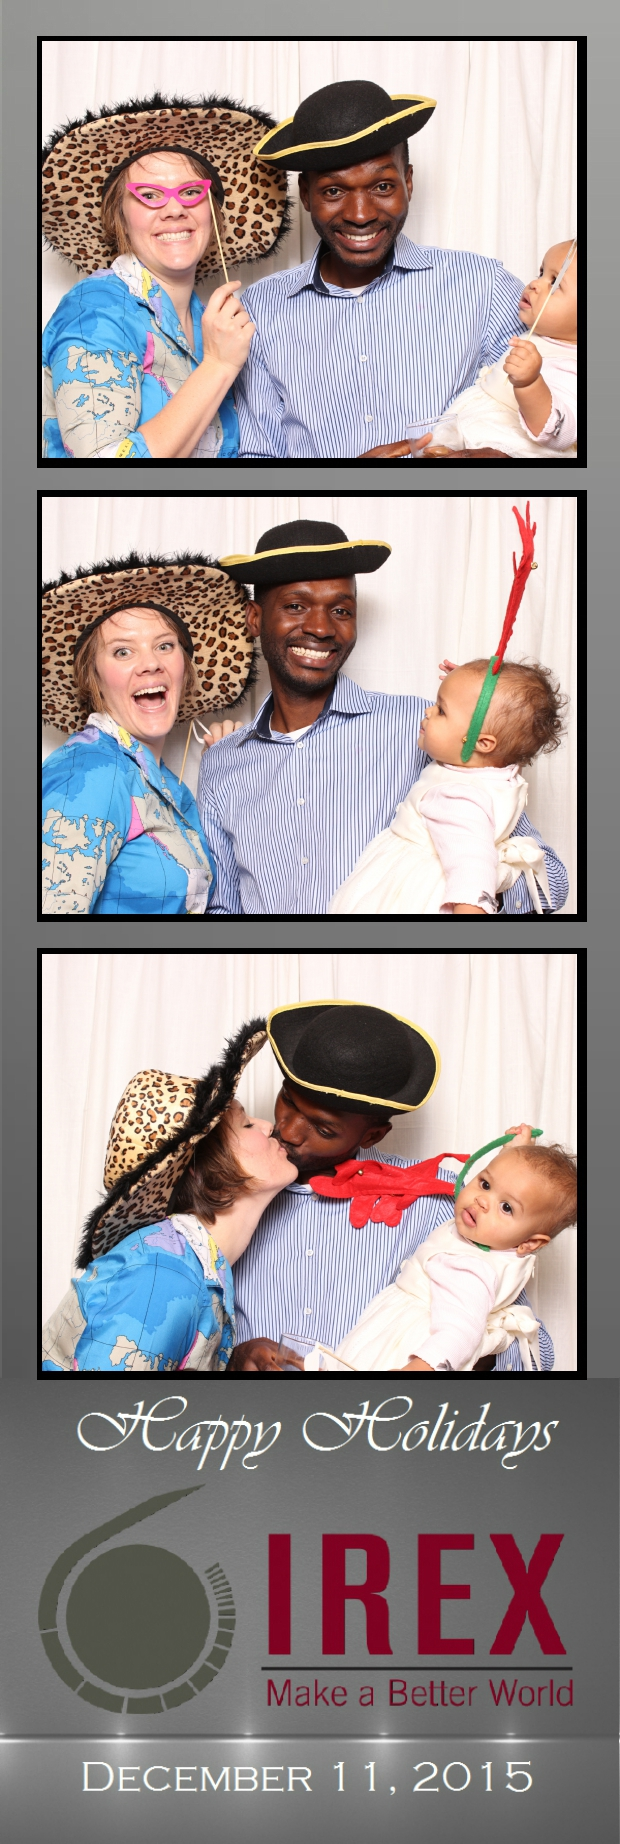 Guest House Events Photo Booth Strips IREX (26).jpg